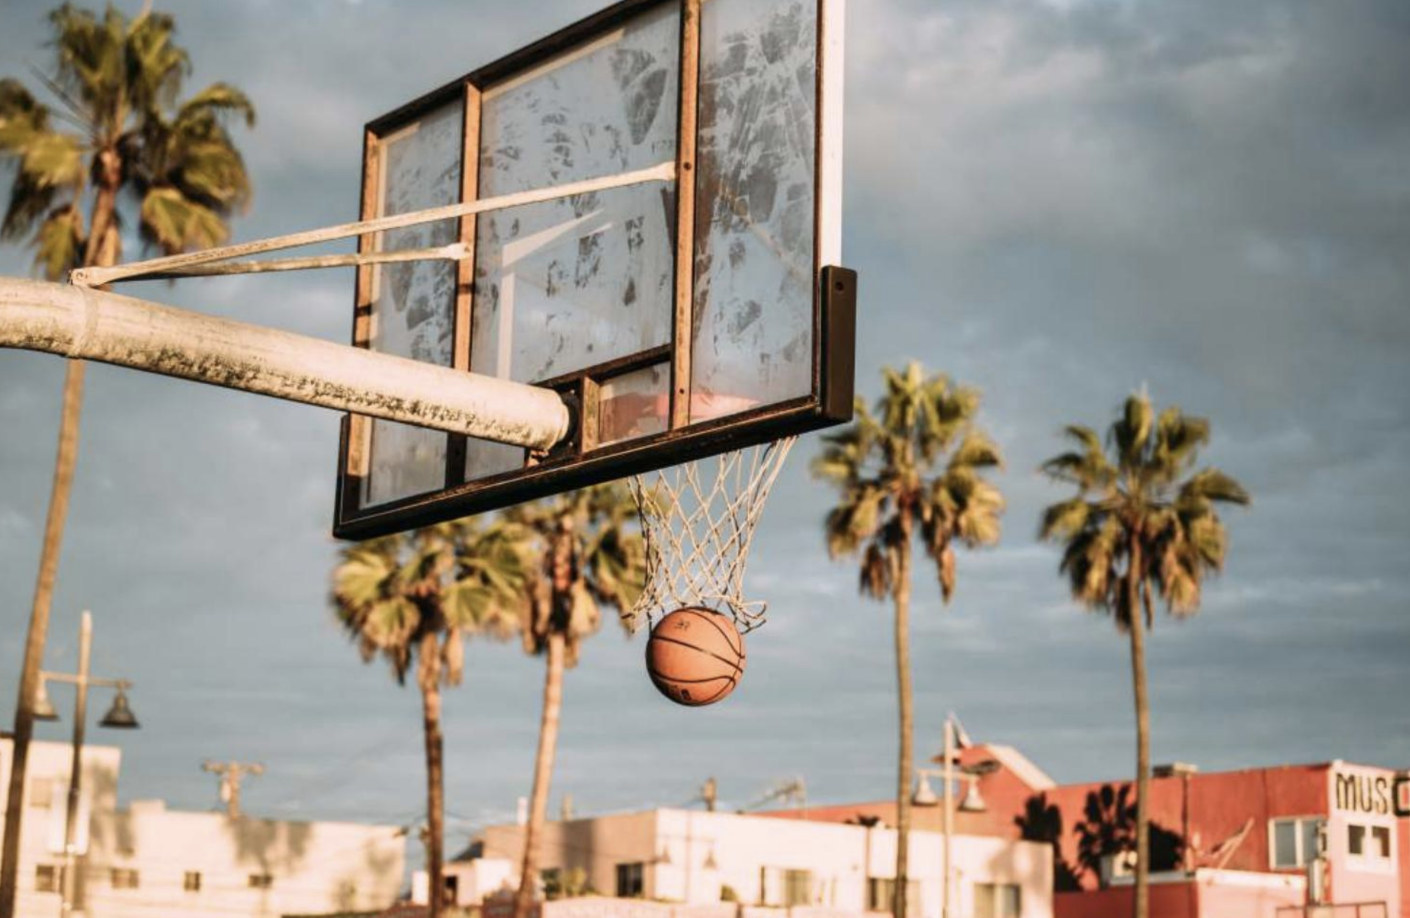 Where do you turn when you want to start your league? Thanks to the Wooter App and Wooter Apparel, people can now start, manage, outfit, and grow their own basketball leagues (even hire the officials)on a professional and customized level....